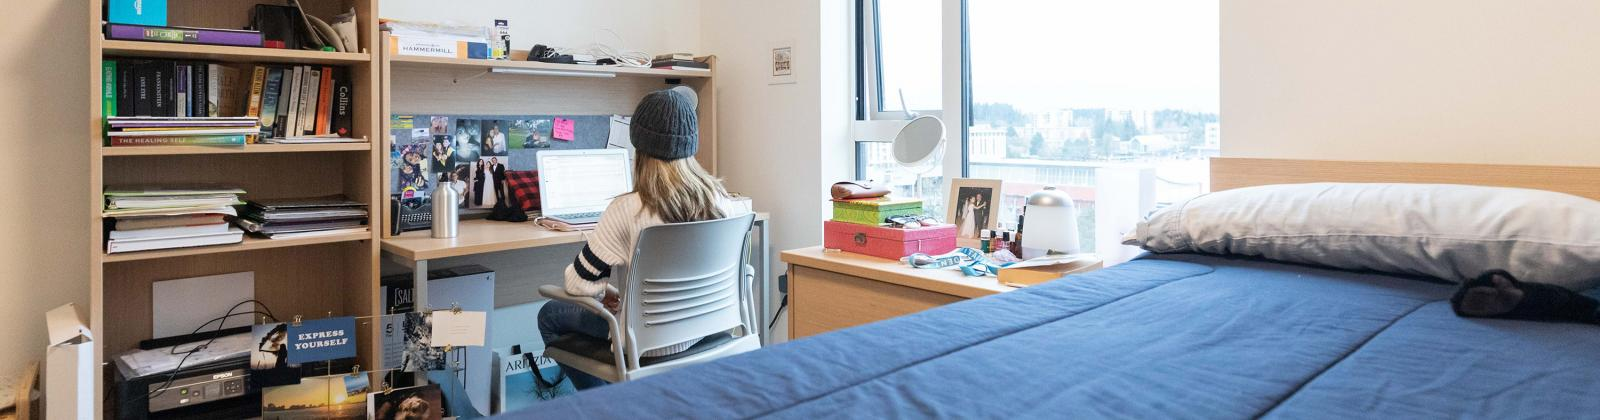 A student is studying in her room